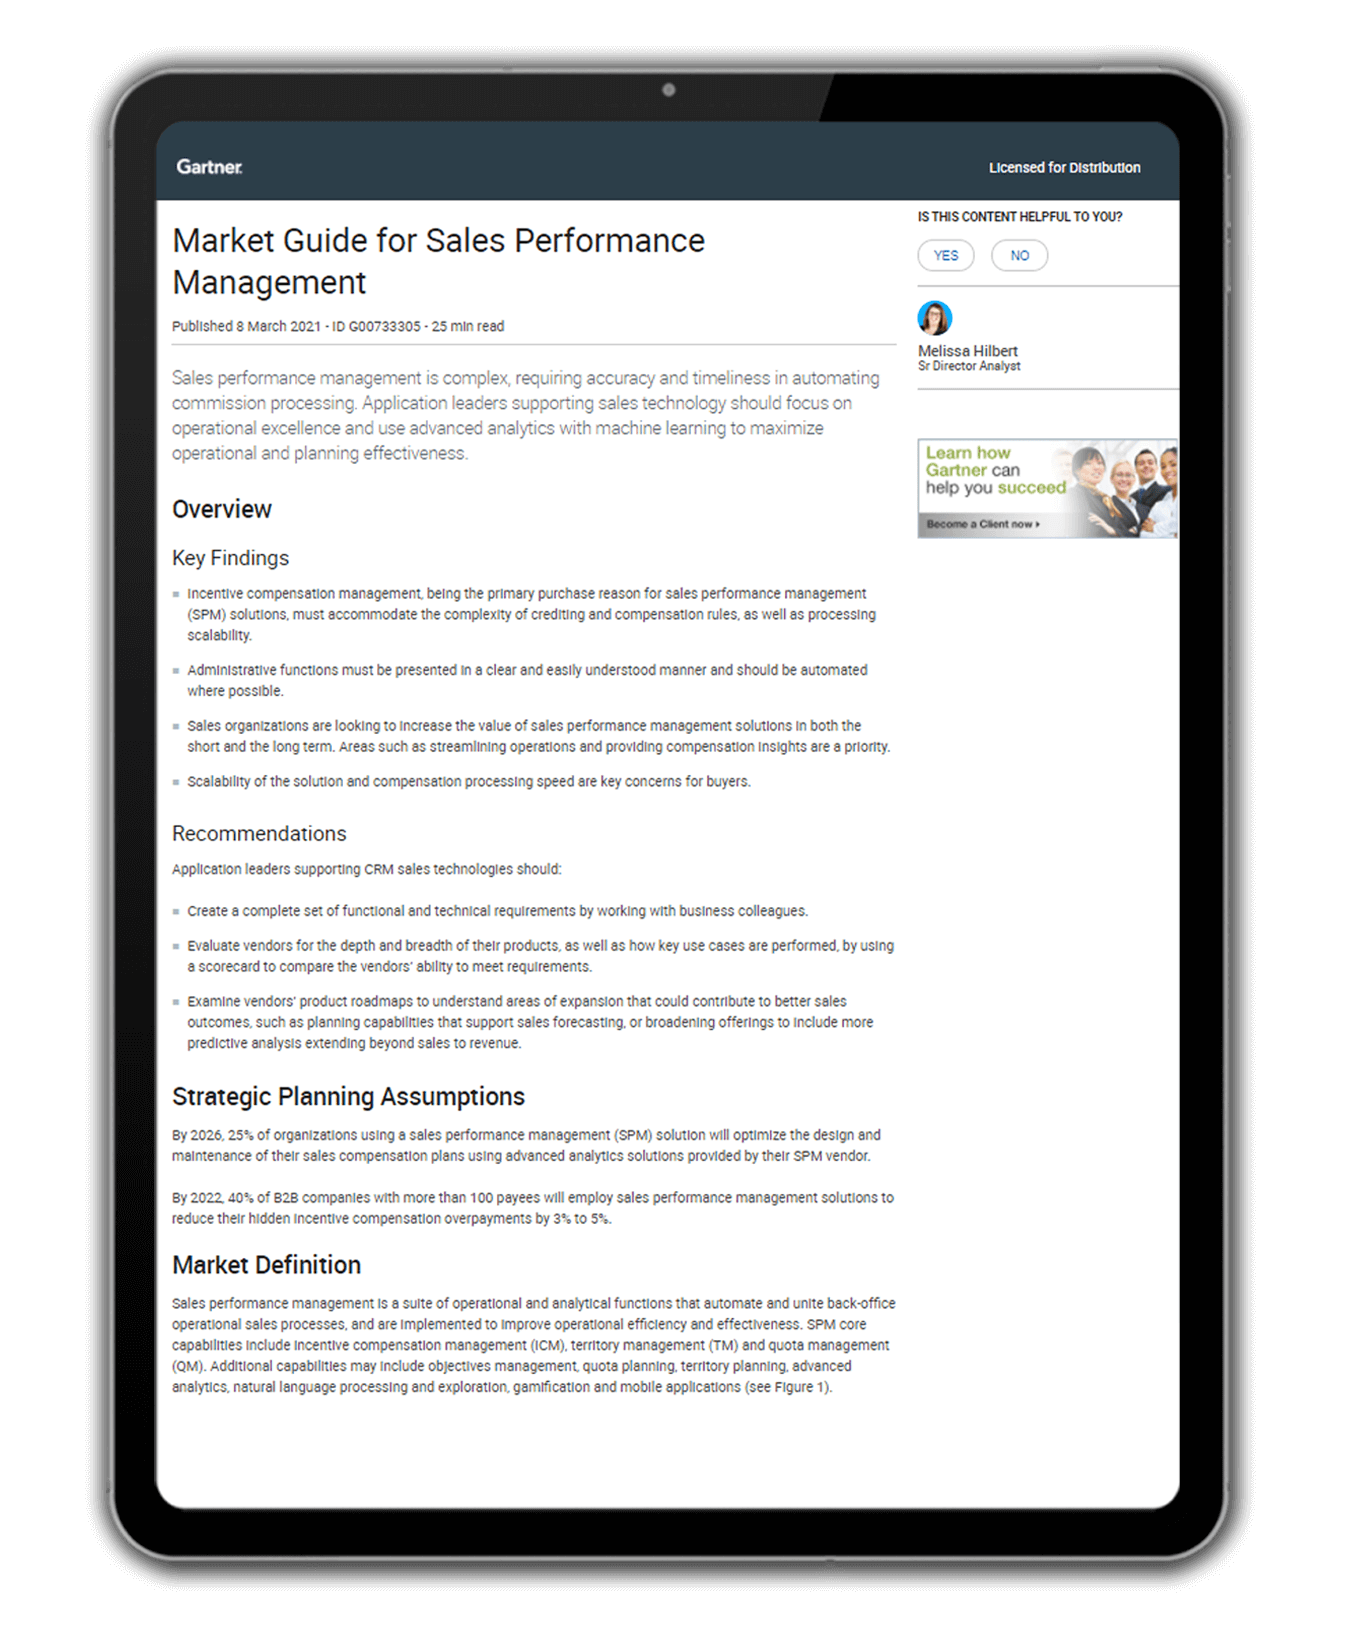 Gartner Market Guide